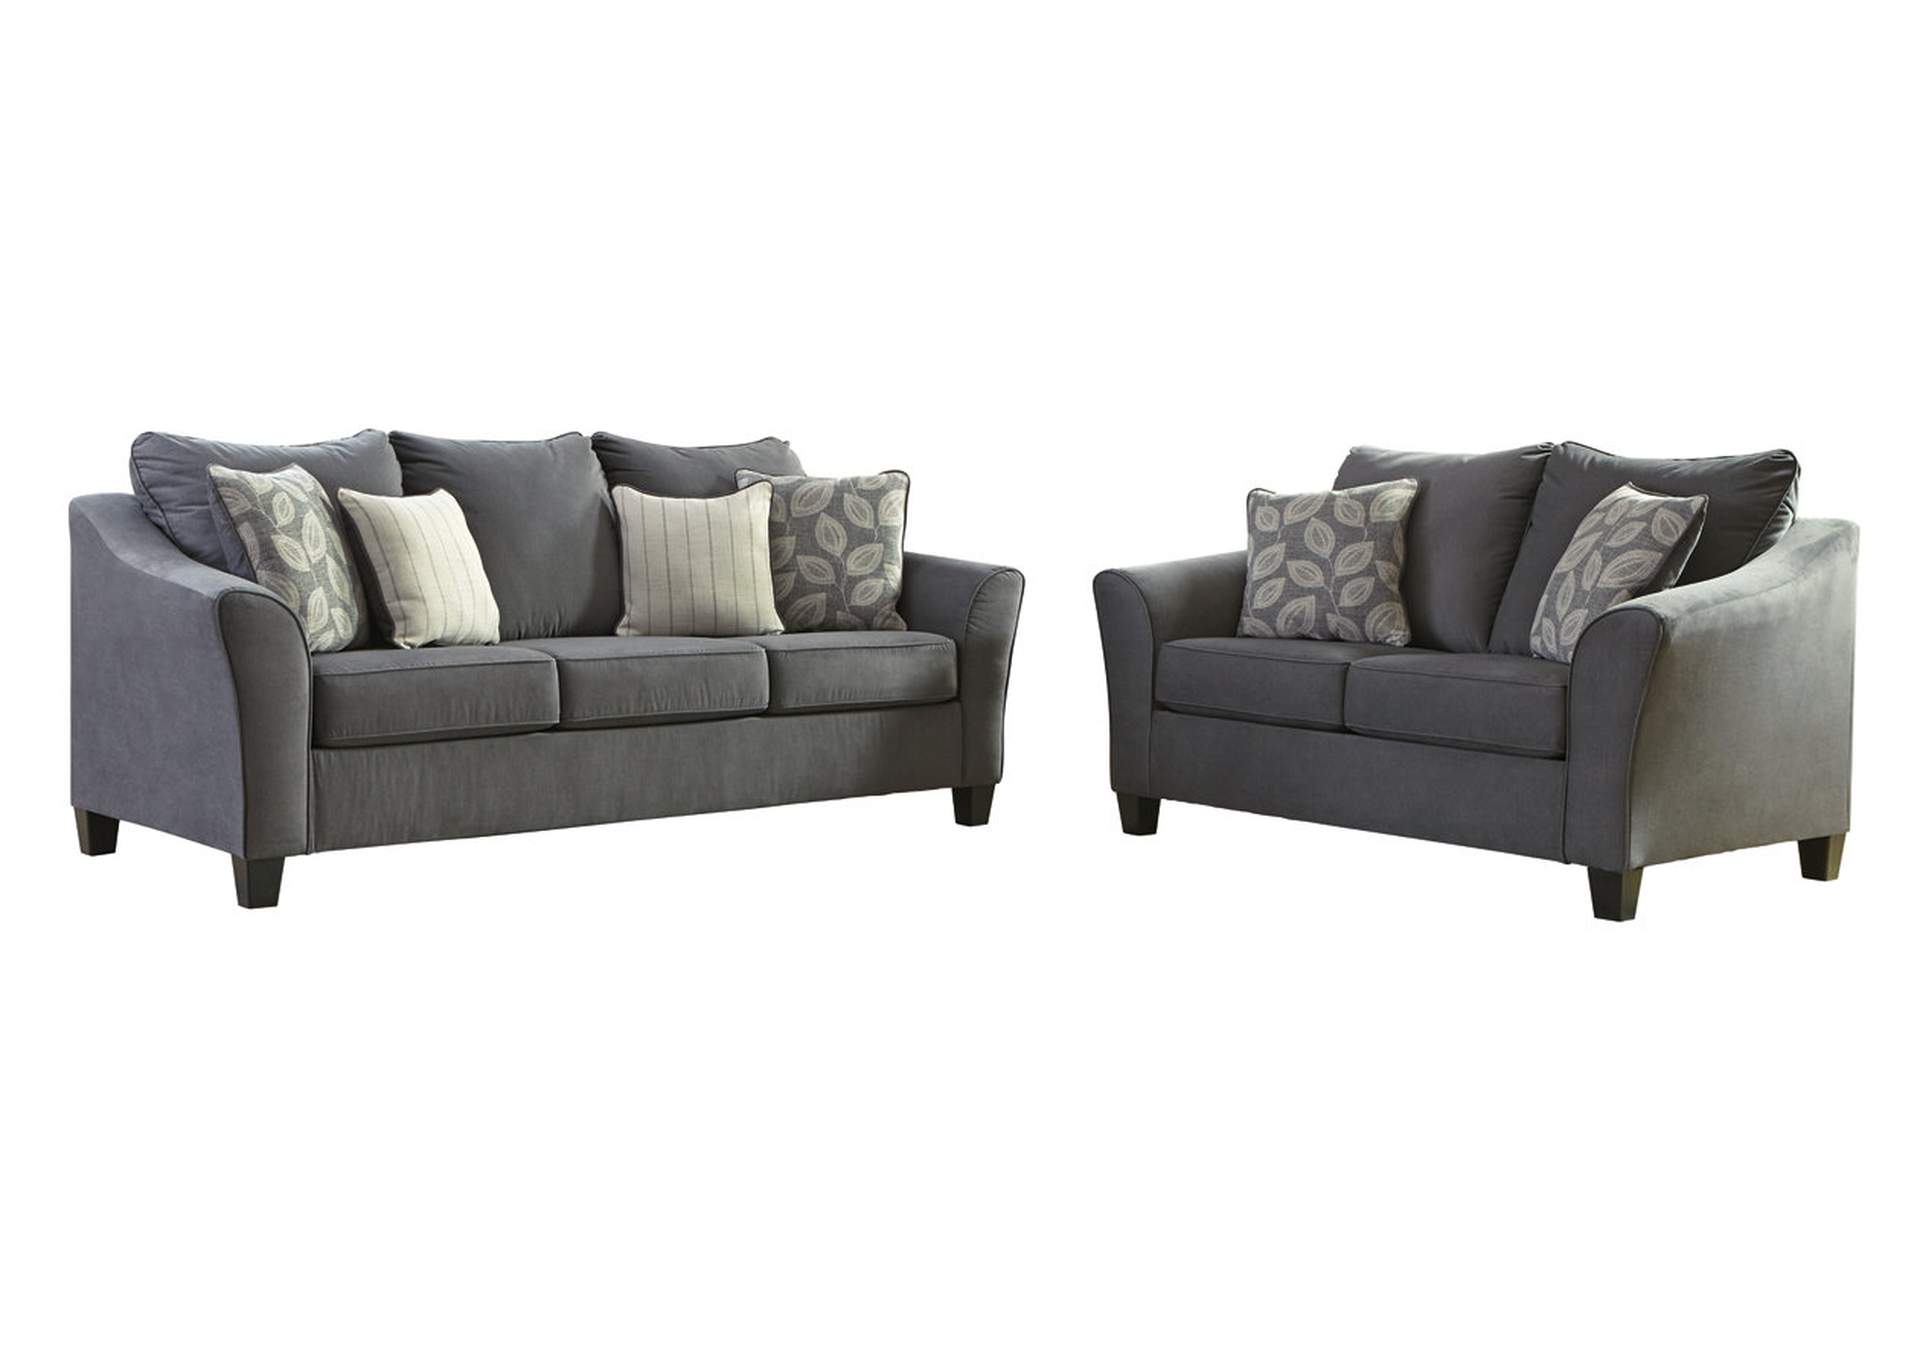 Sanzero Graphite Sofa & Loveseat,Signature Design By Ashley